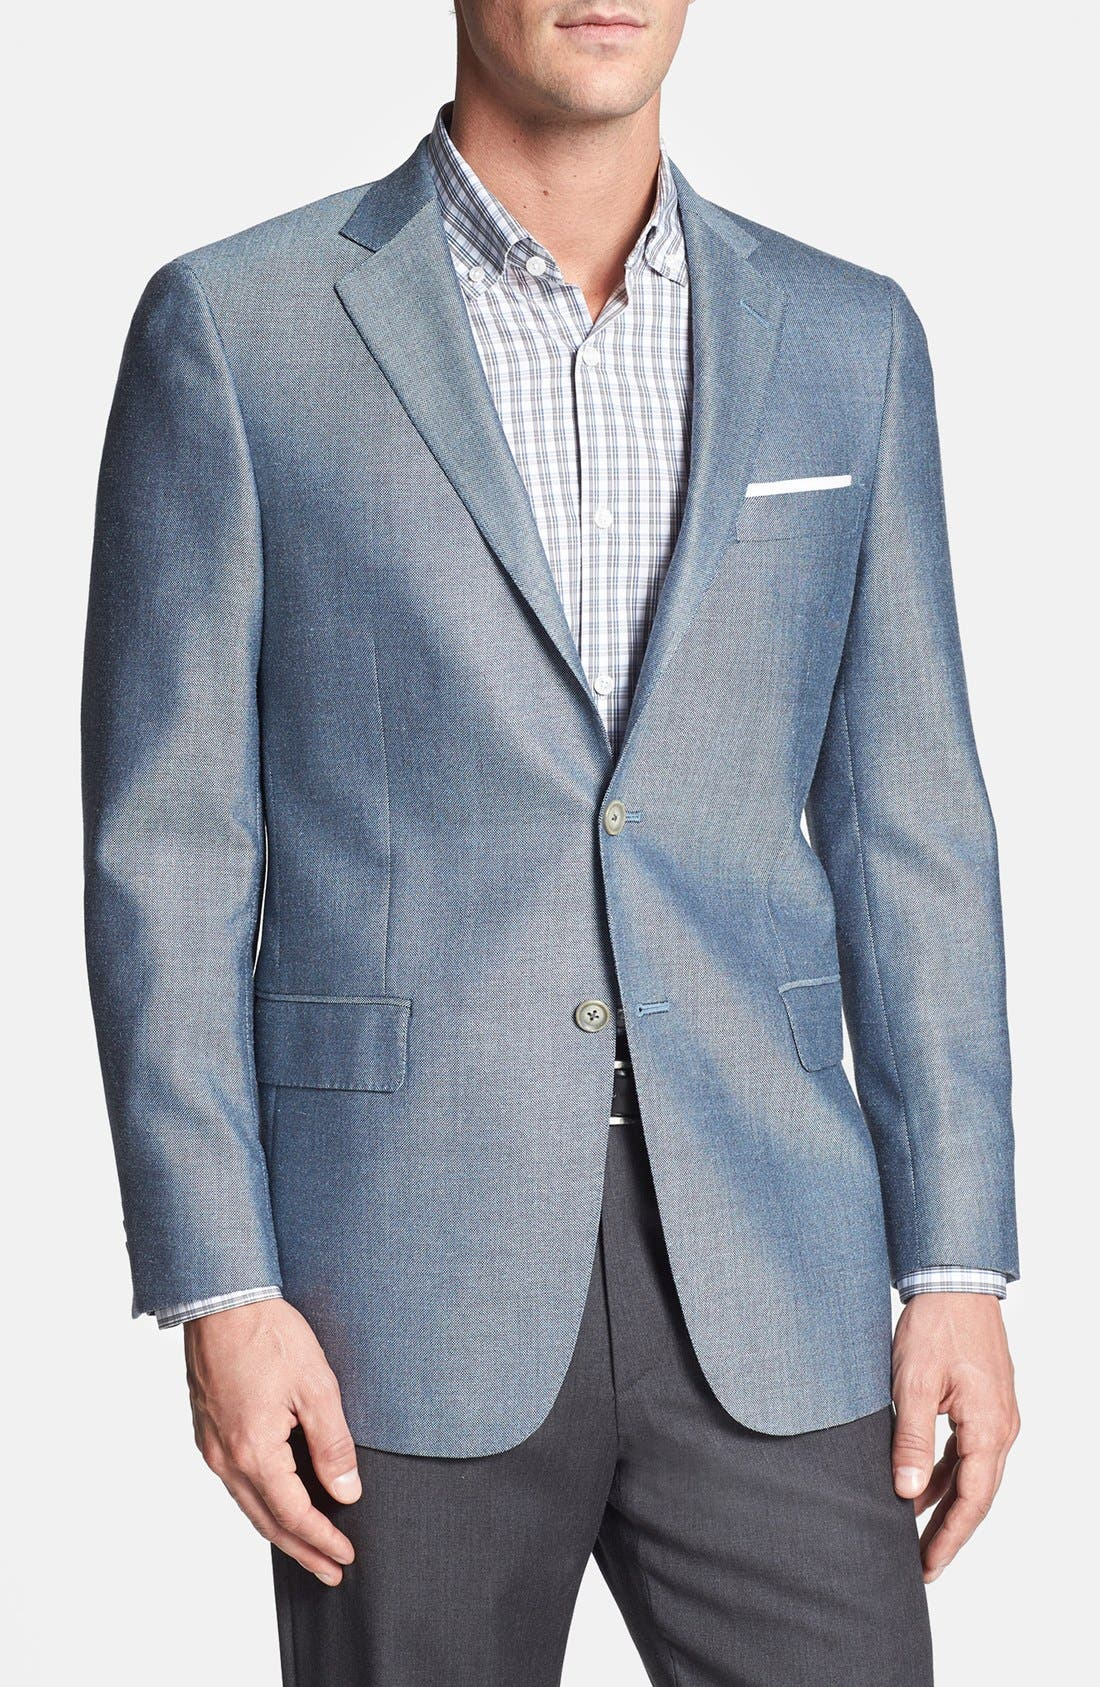 Alternate Image 1 Selected - Hart Schaffner Marx 'New York' Classic Fit Silk Blend Sportcoat